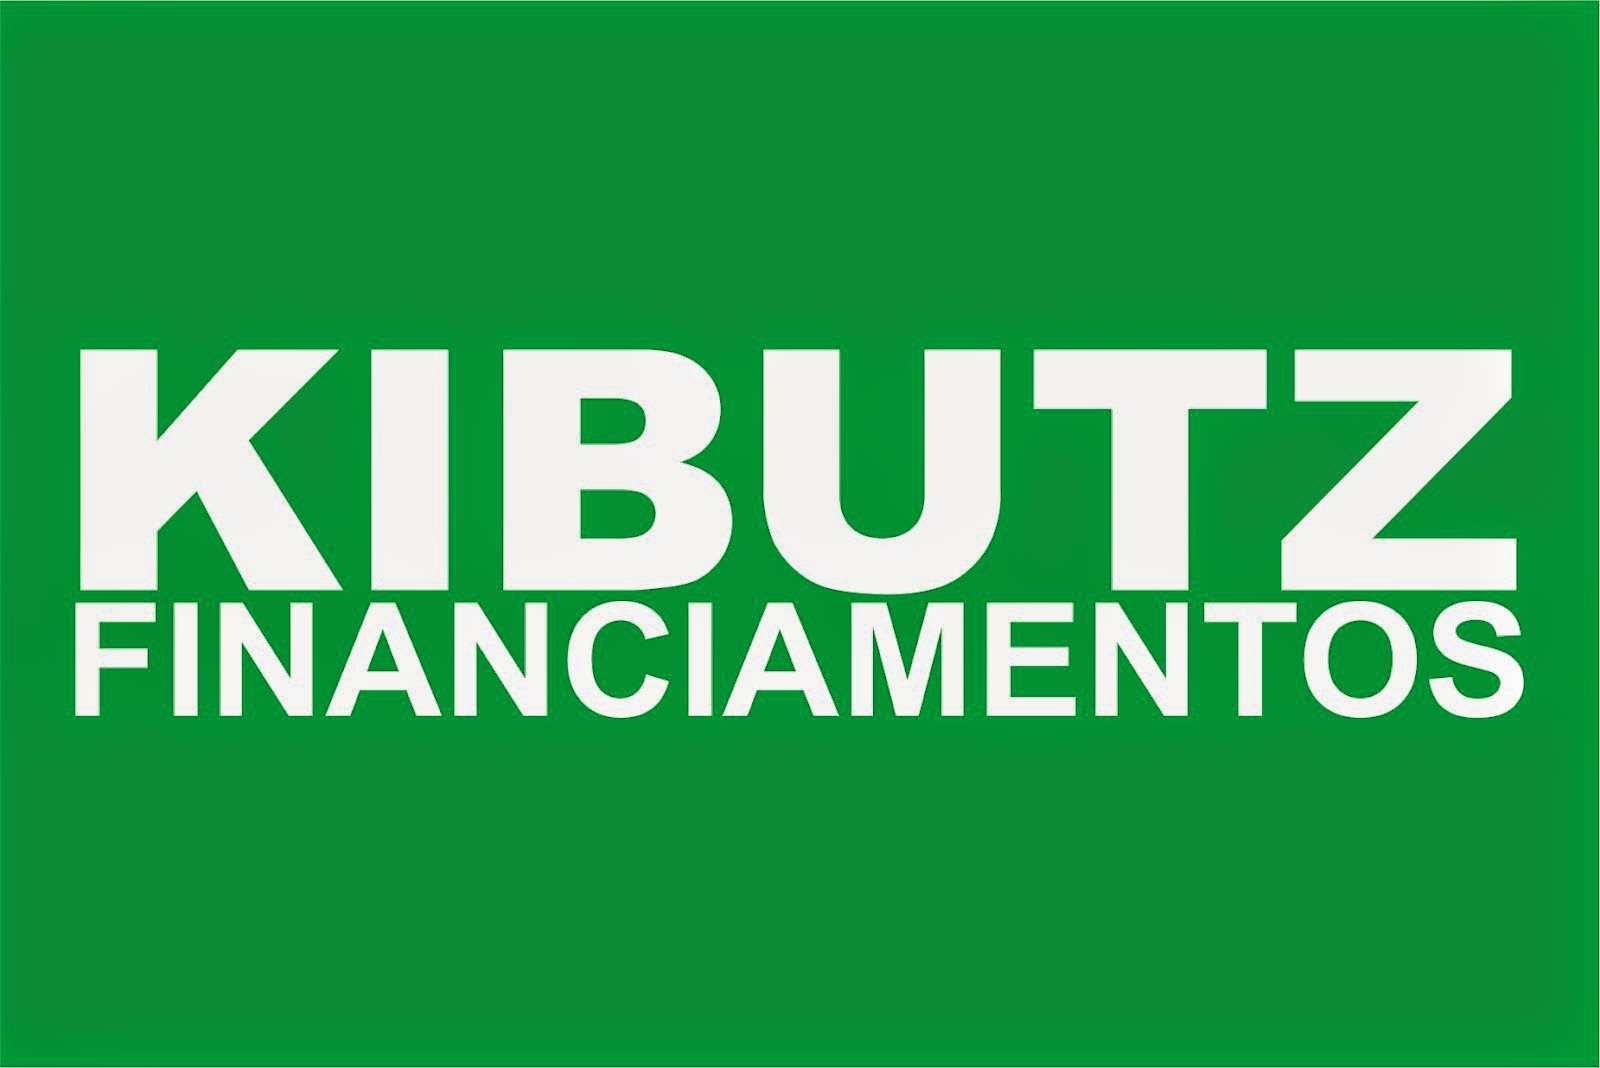 KIBUTZ FINANCIAMENTOS